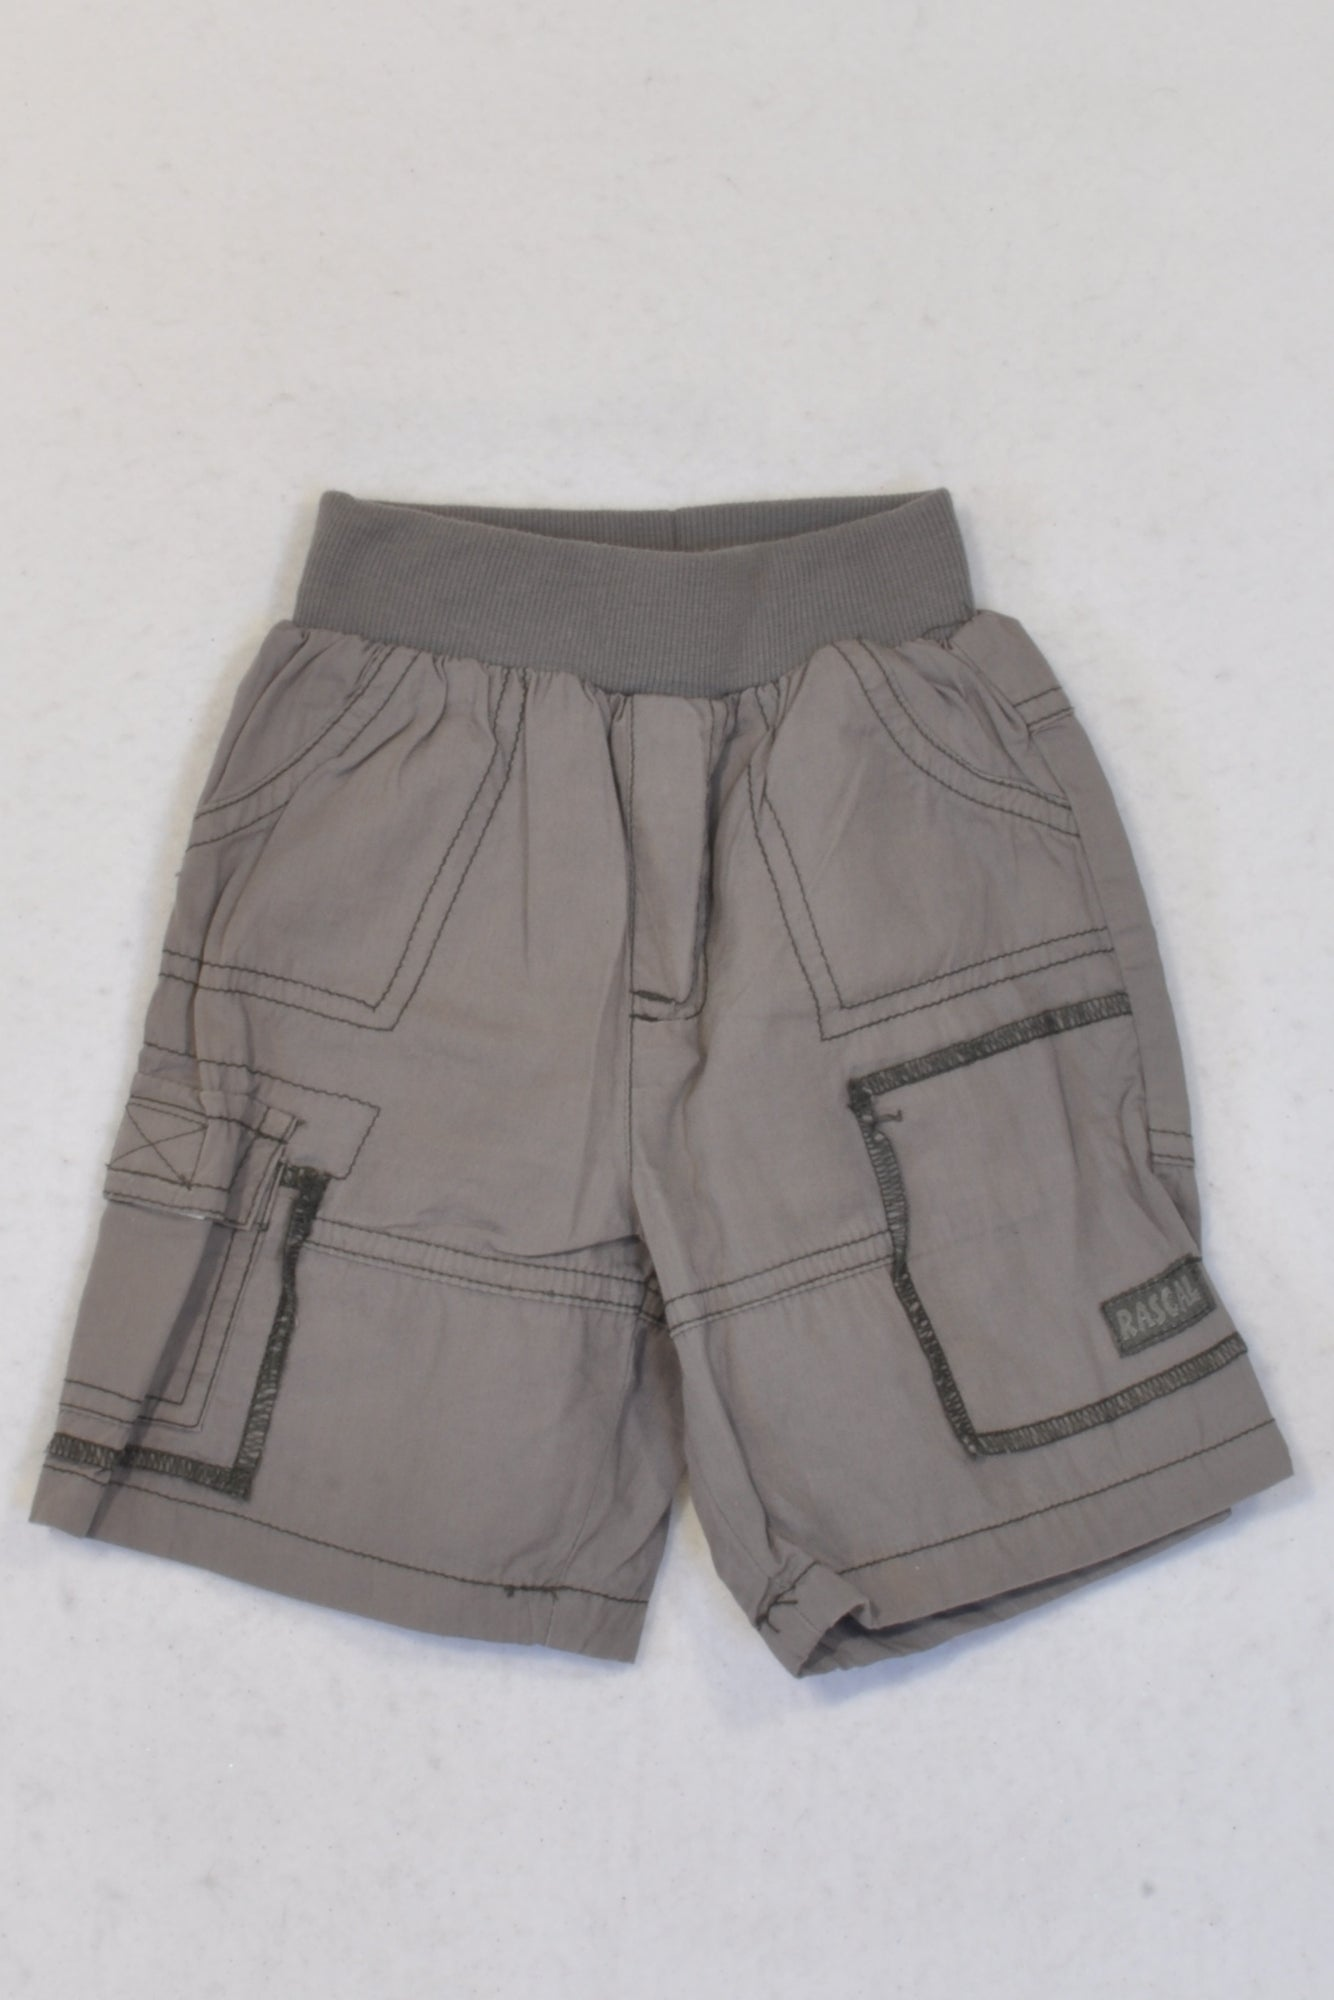 Ackermans Grey Lightweight Banded Shorts Boys 3-6 months